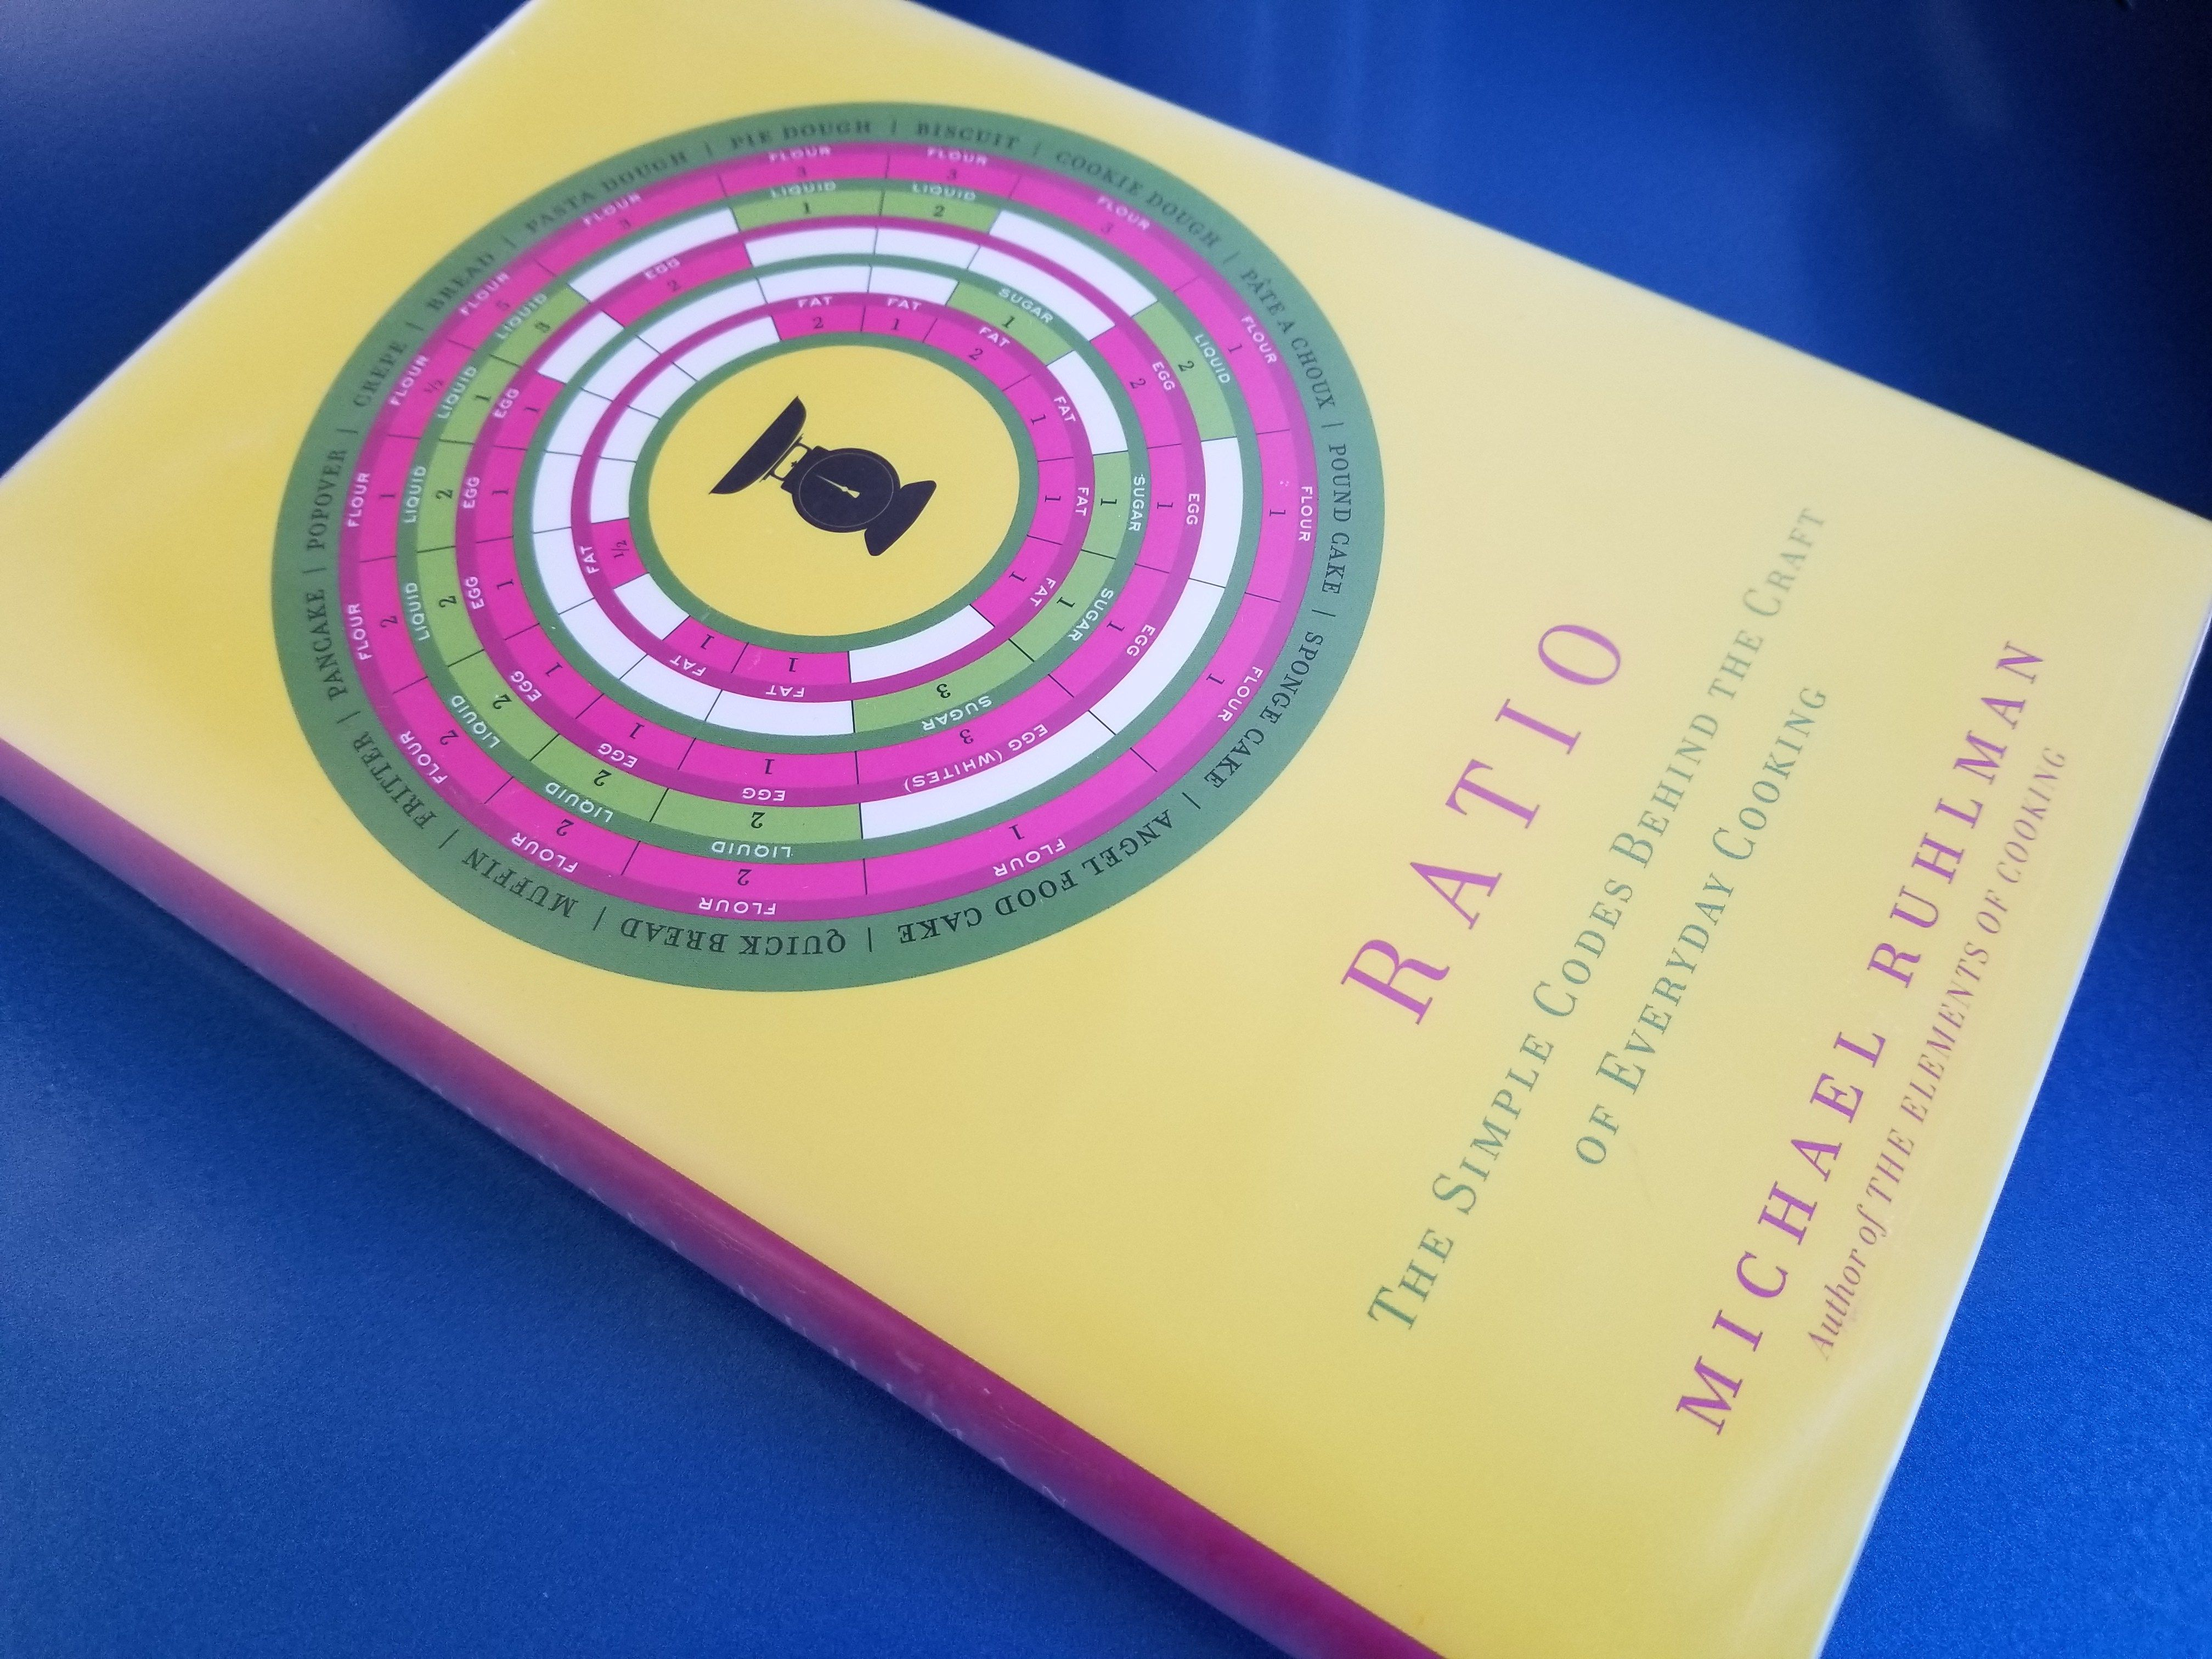 📖 Read pages 195-244 of Ratio by Michael Ruhlman - http://boffosocko.com/2018/02/10/read-pages-195-244-of-ratio-by-michael-ruhlman/